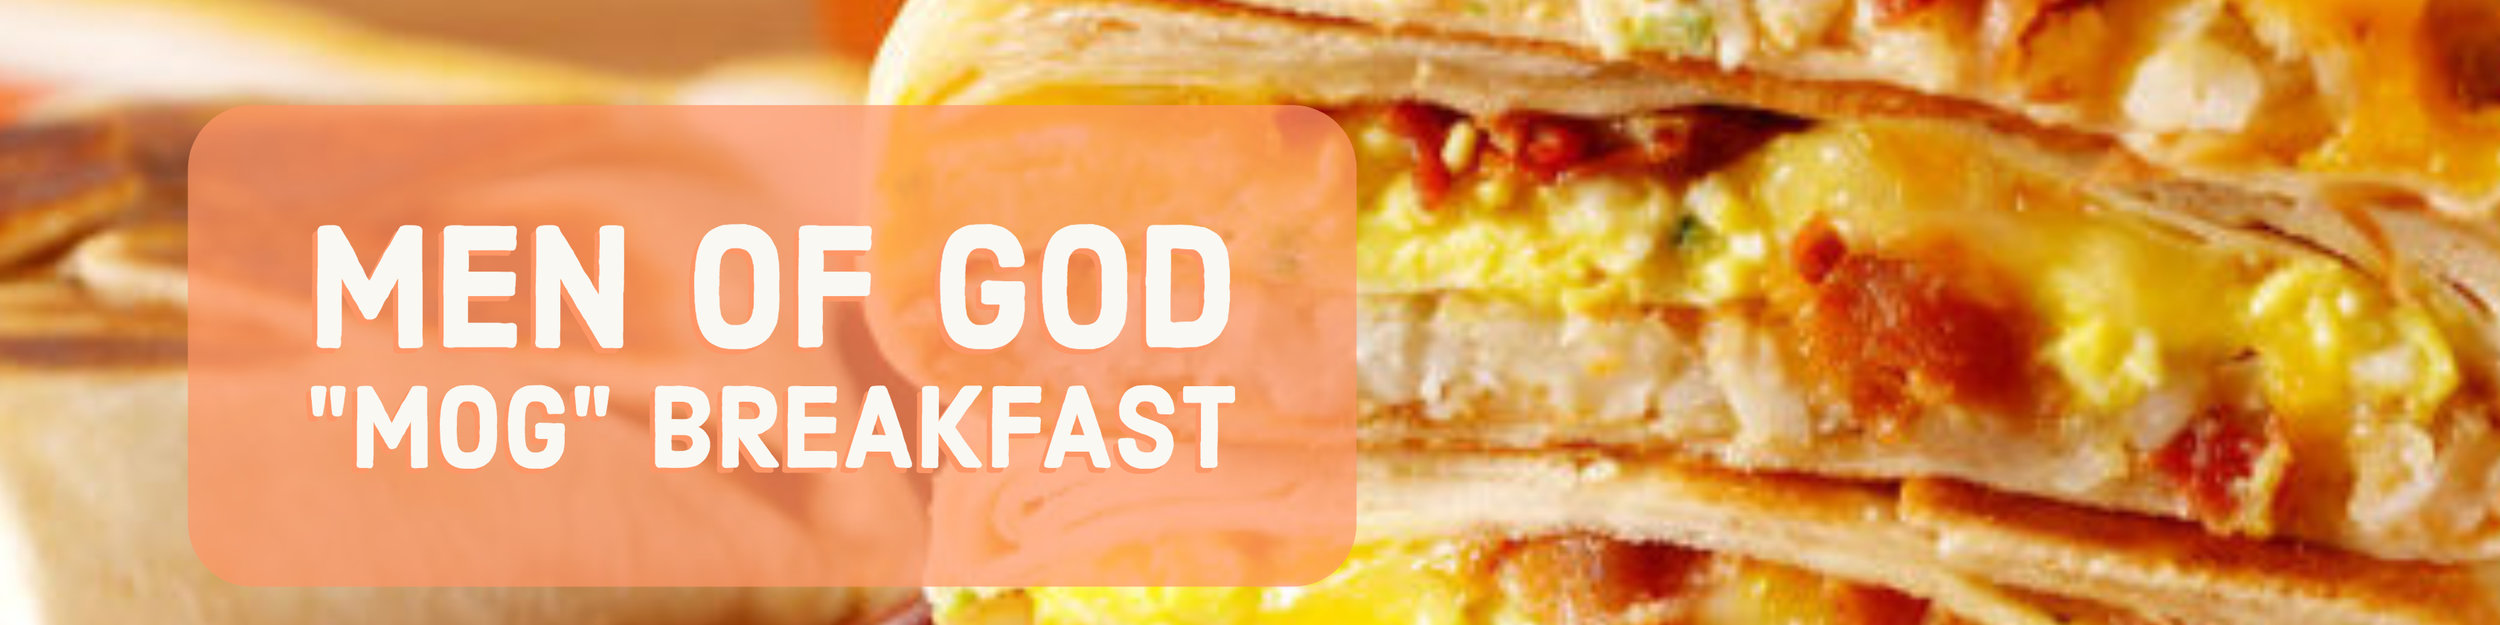 MOG (Men of God) Monthly Breakfast 1st Saturday of the month.  Dining at Bordo Restaurant on Chmielna 34. For more information please contact  Jonny .